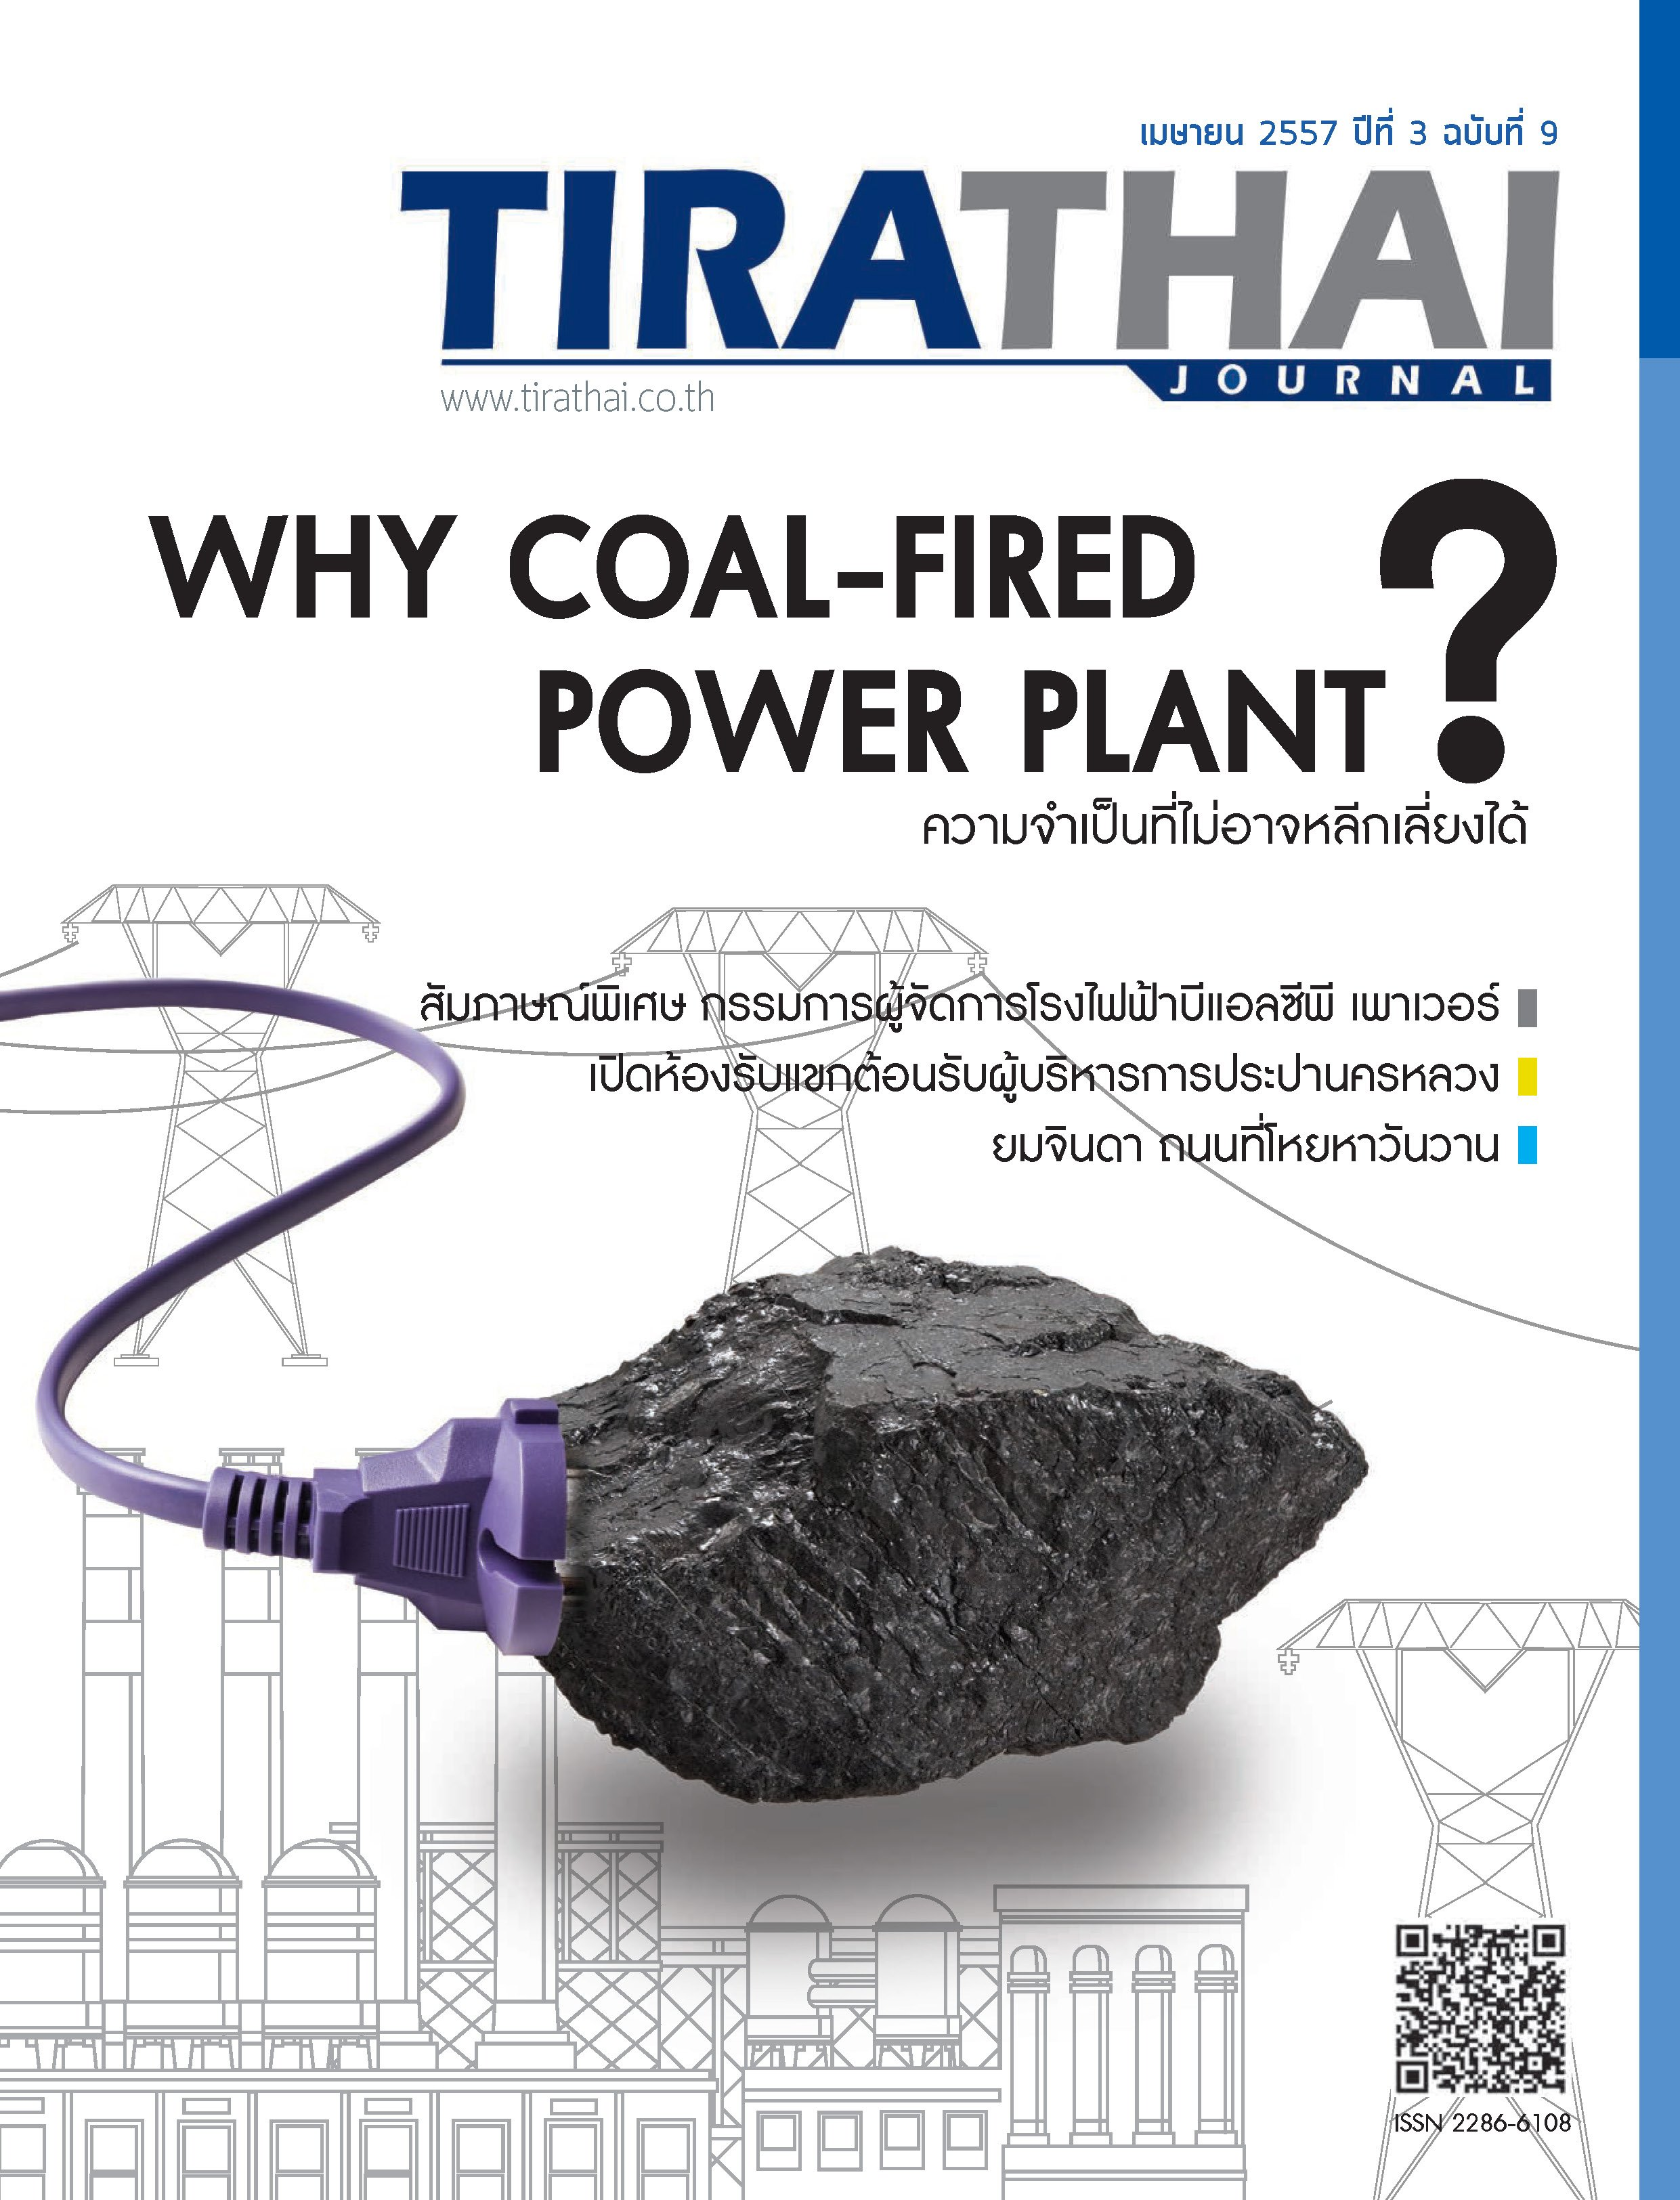 WHY COAL-FIRED POWER PLANT?